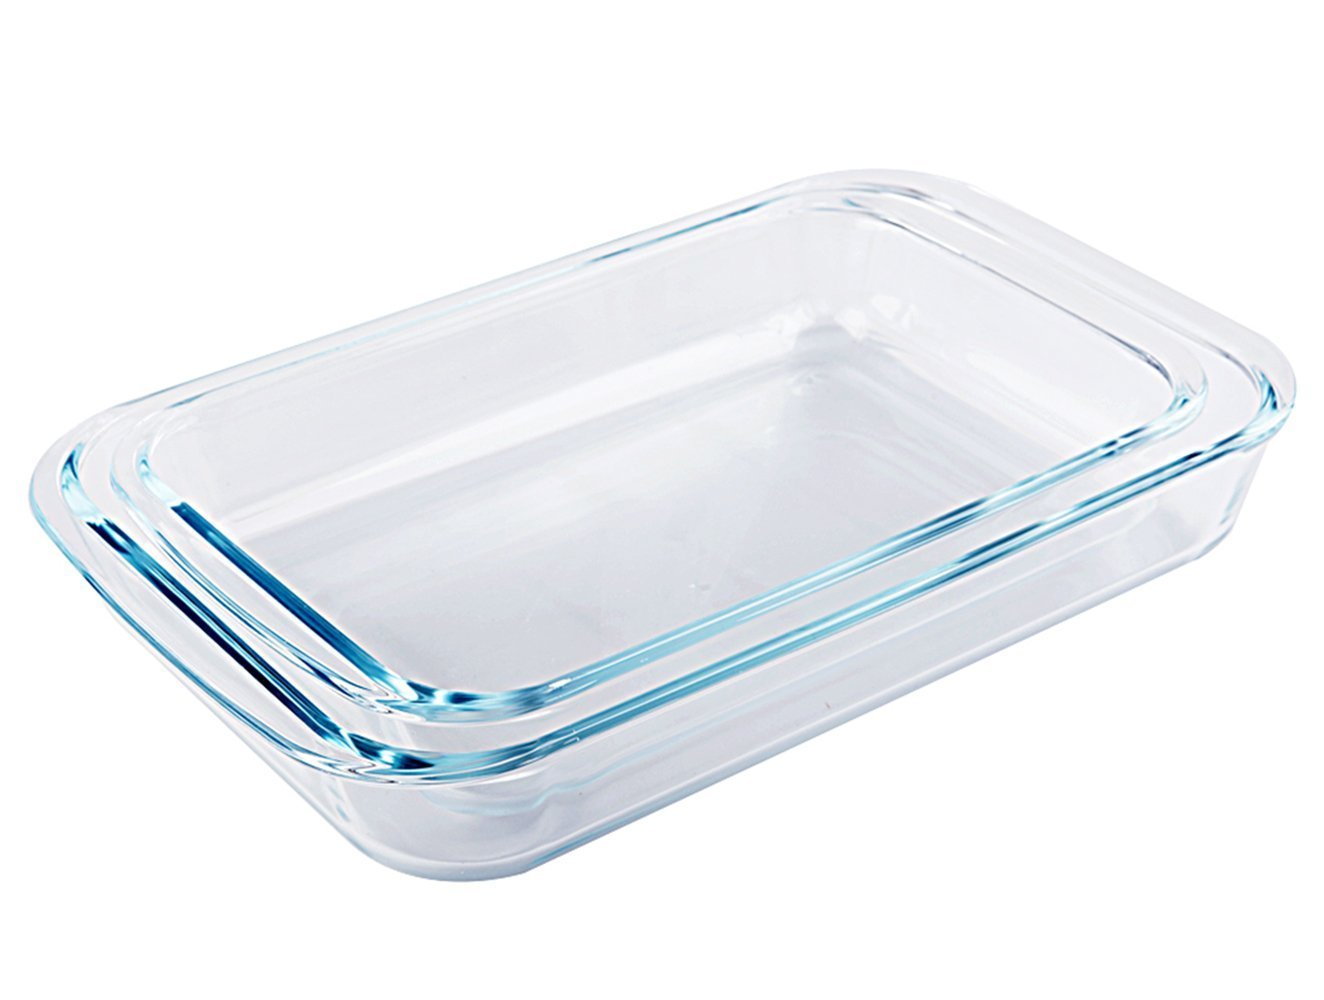 Tebery 2 Piece Clear Toughened Glass Baking Dishes, Oblong - 7 x 11.5 & 8 x 13.5